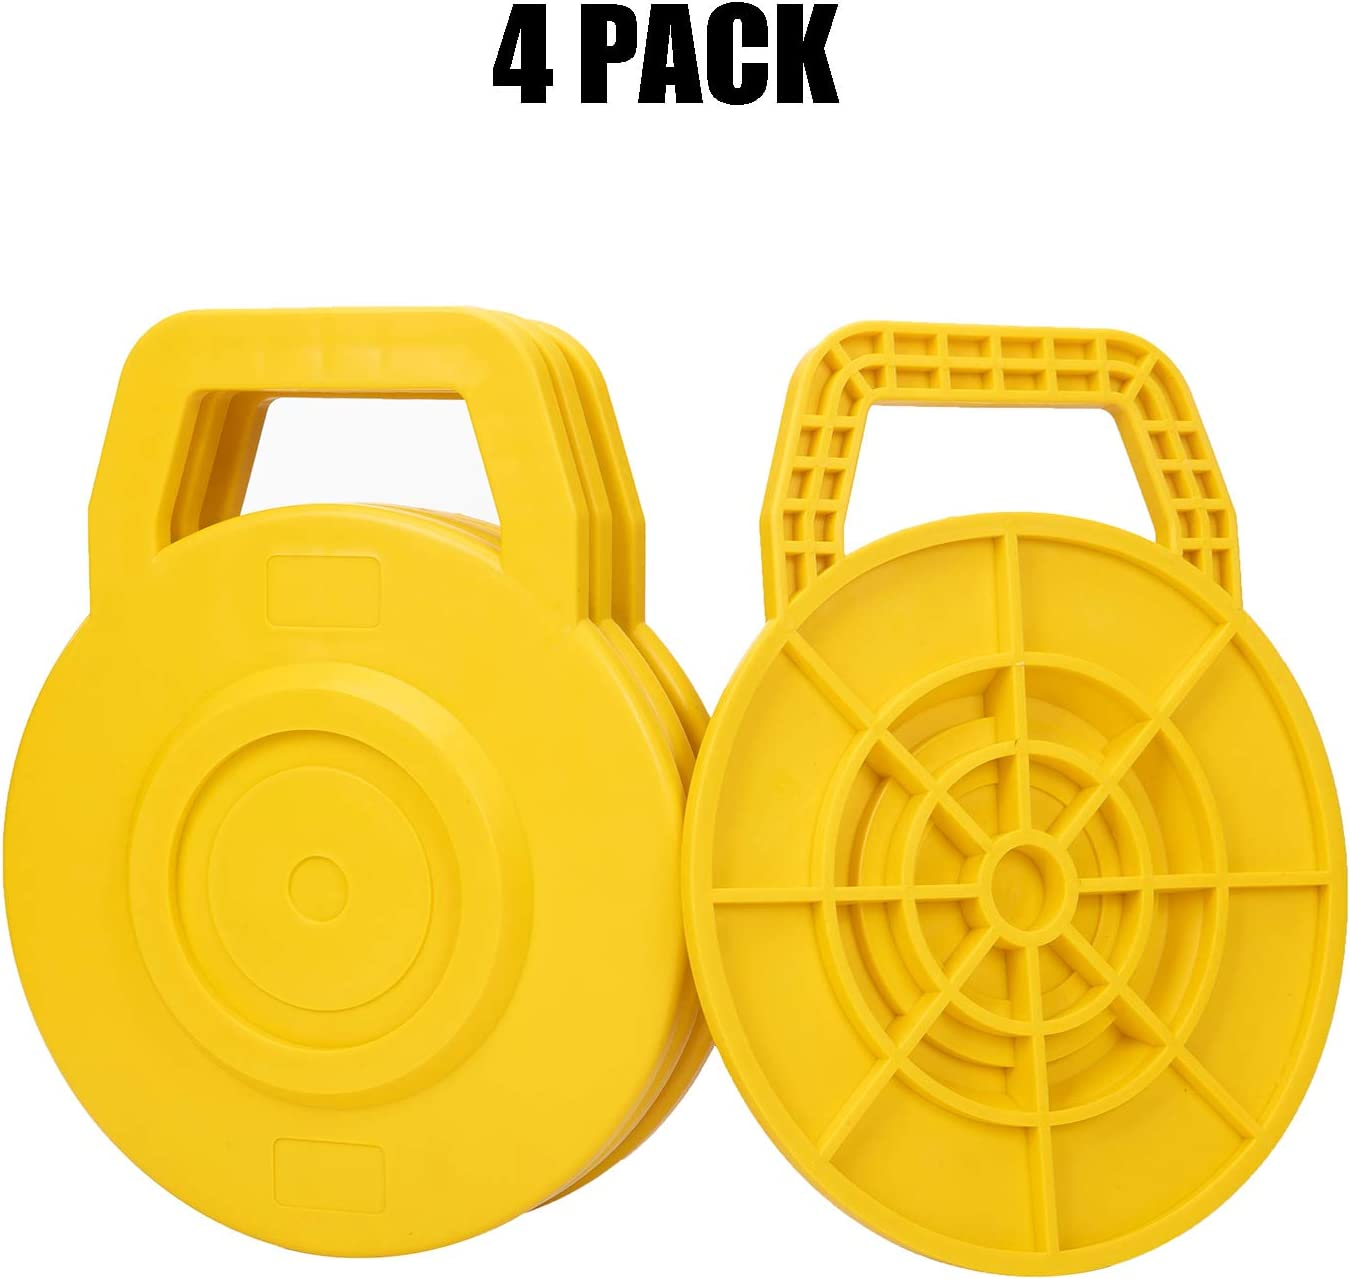 Homeon Wheels Stabilizing Jack Pads for RV Camper Leveling Blocks Help Prevent Jacks from Sinking (4 Pack - Circle)